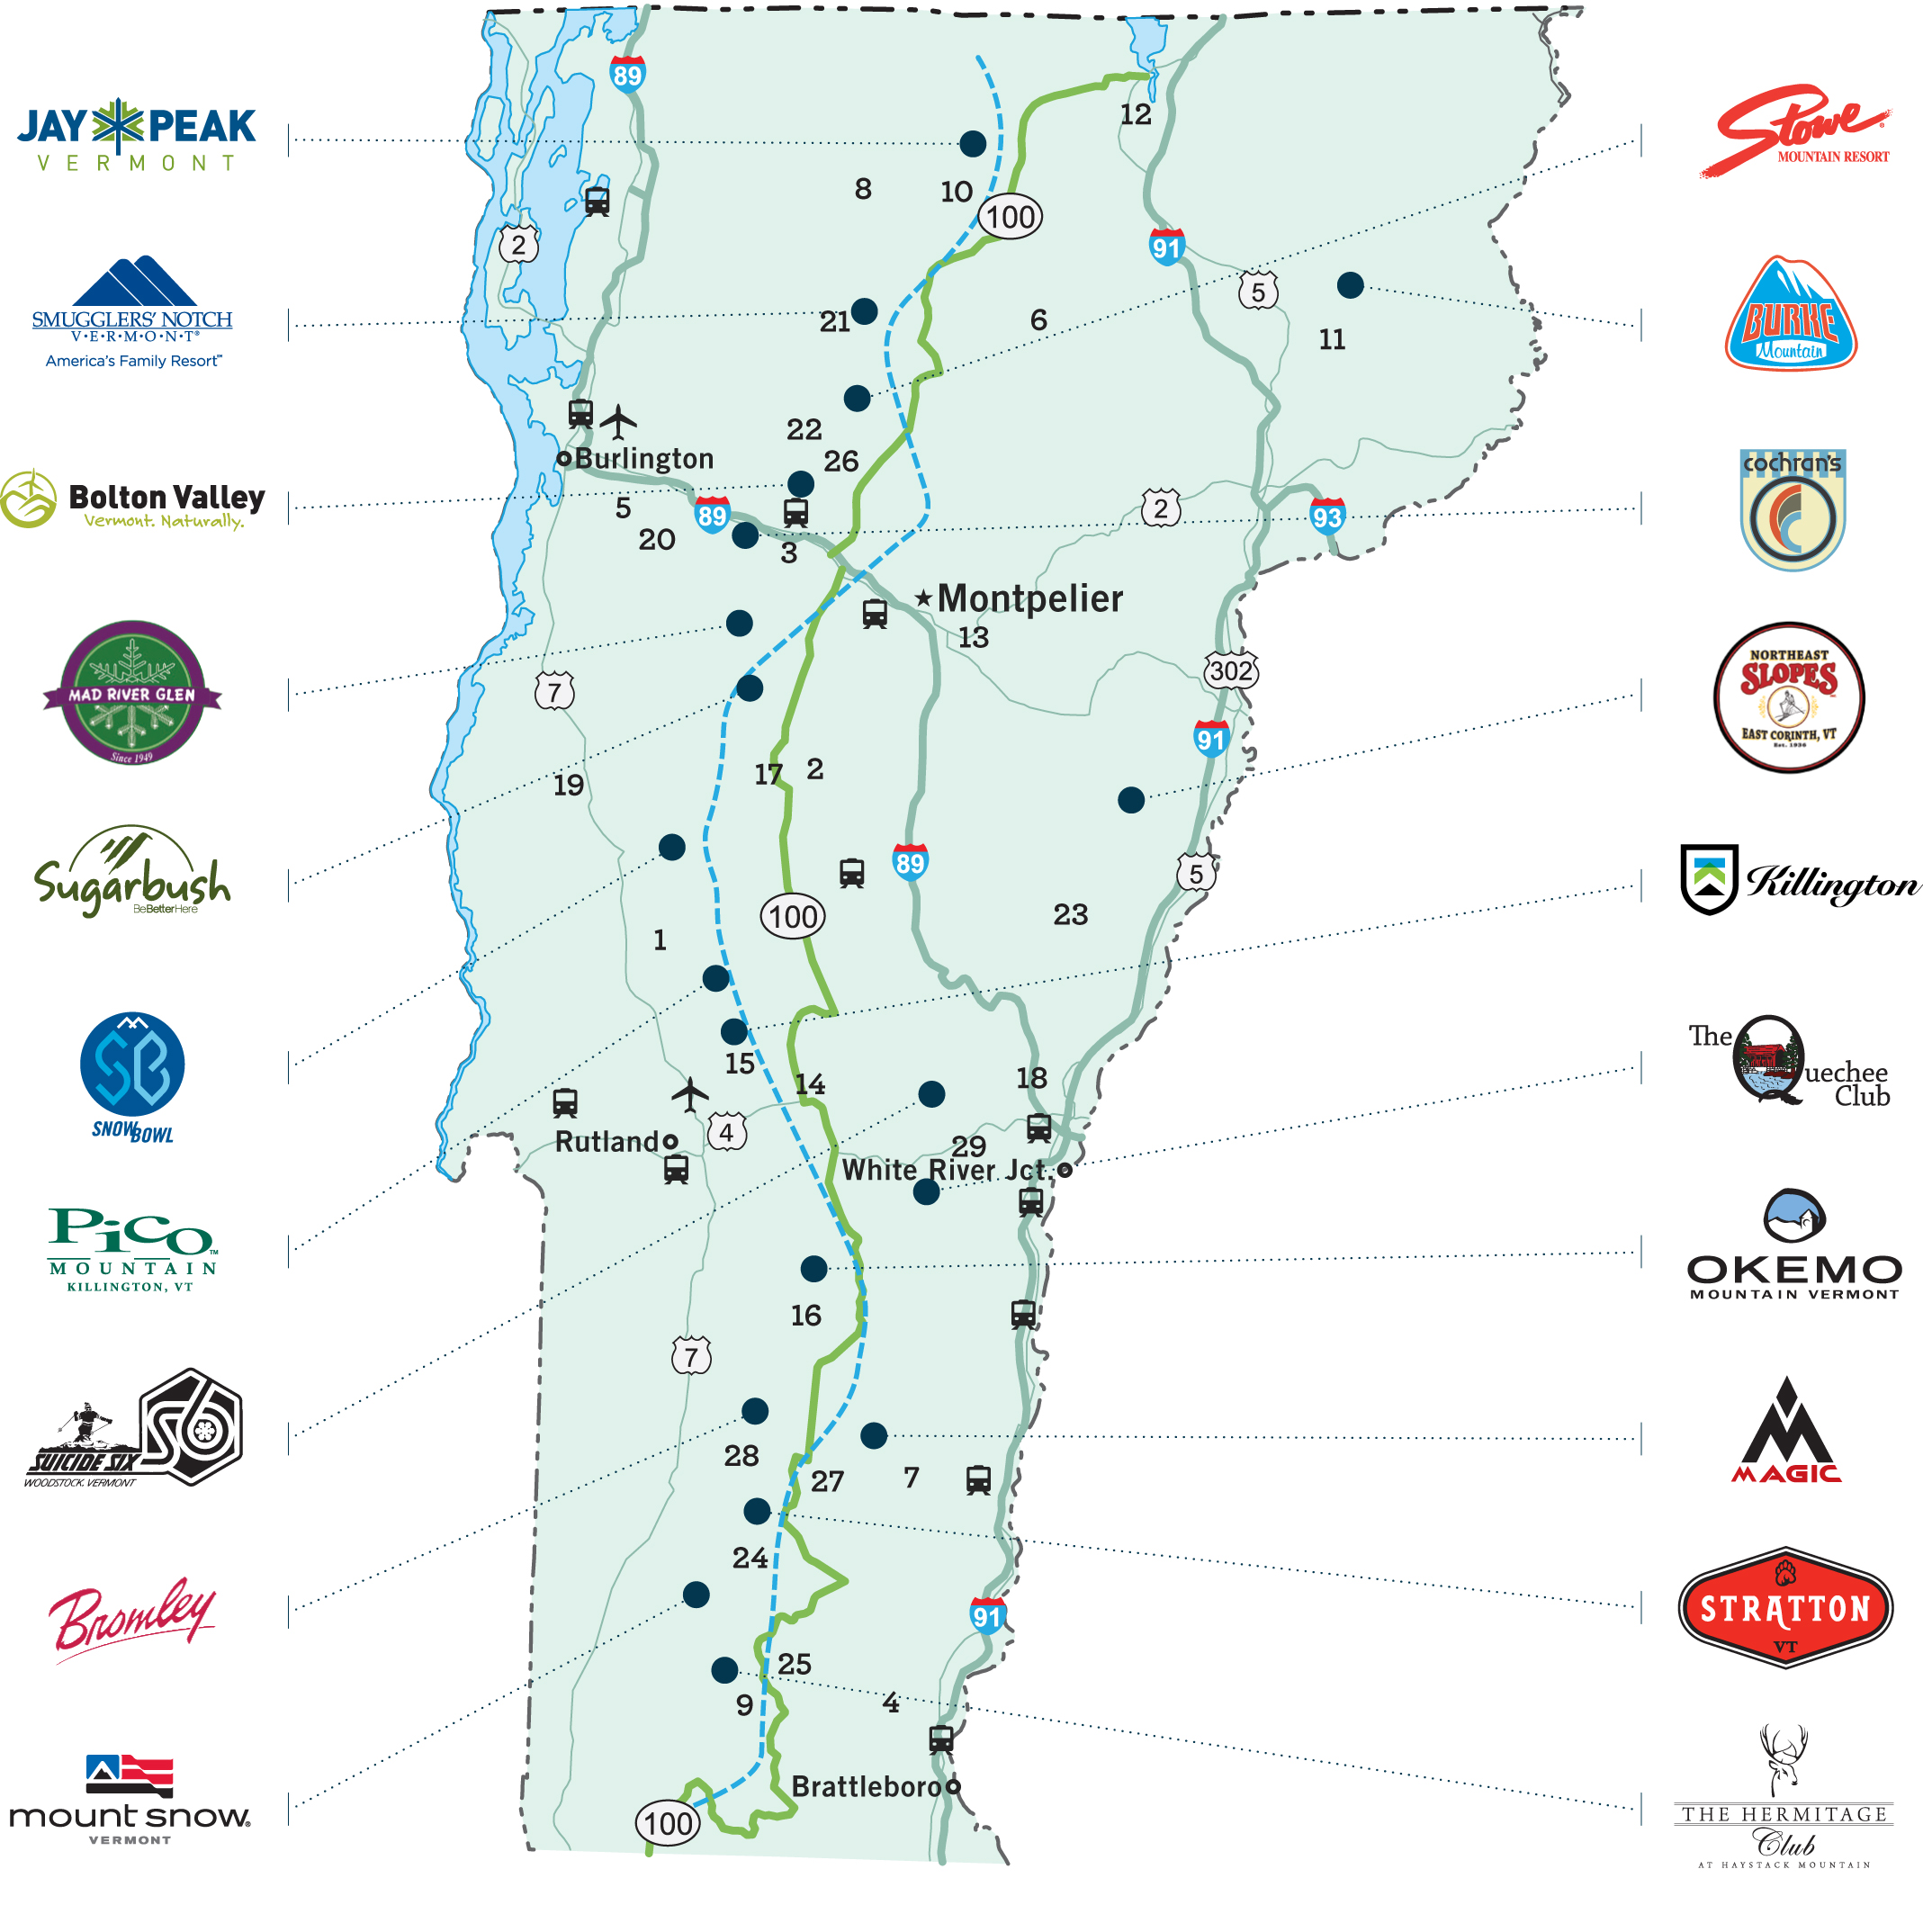 Travel To Vermont Resorts Ski Vermont - Eastern-us-ski-resorts-map